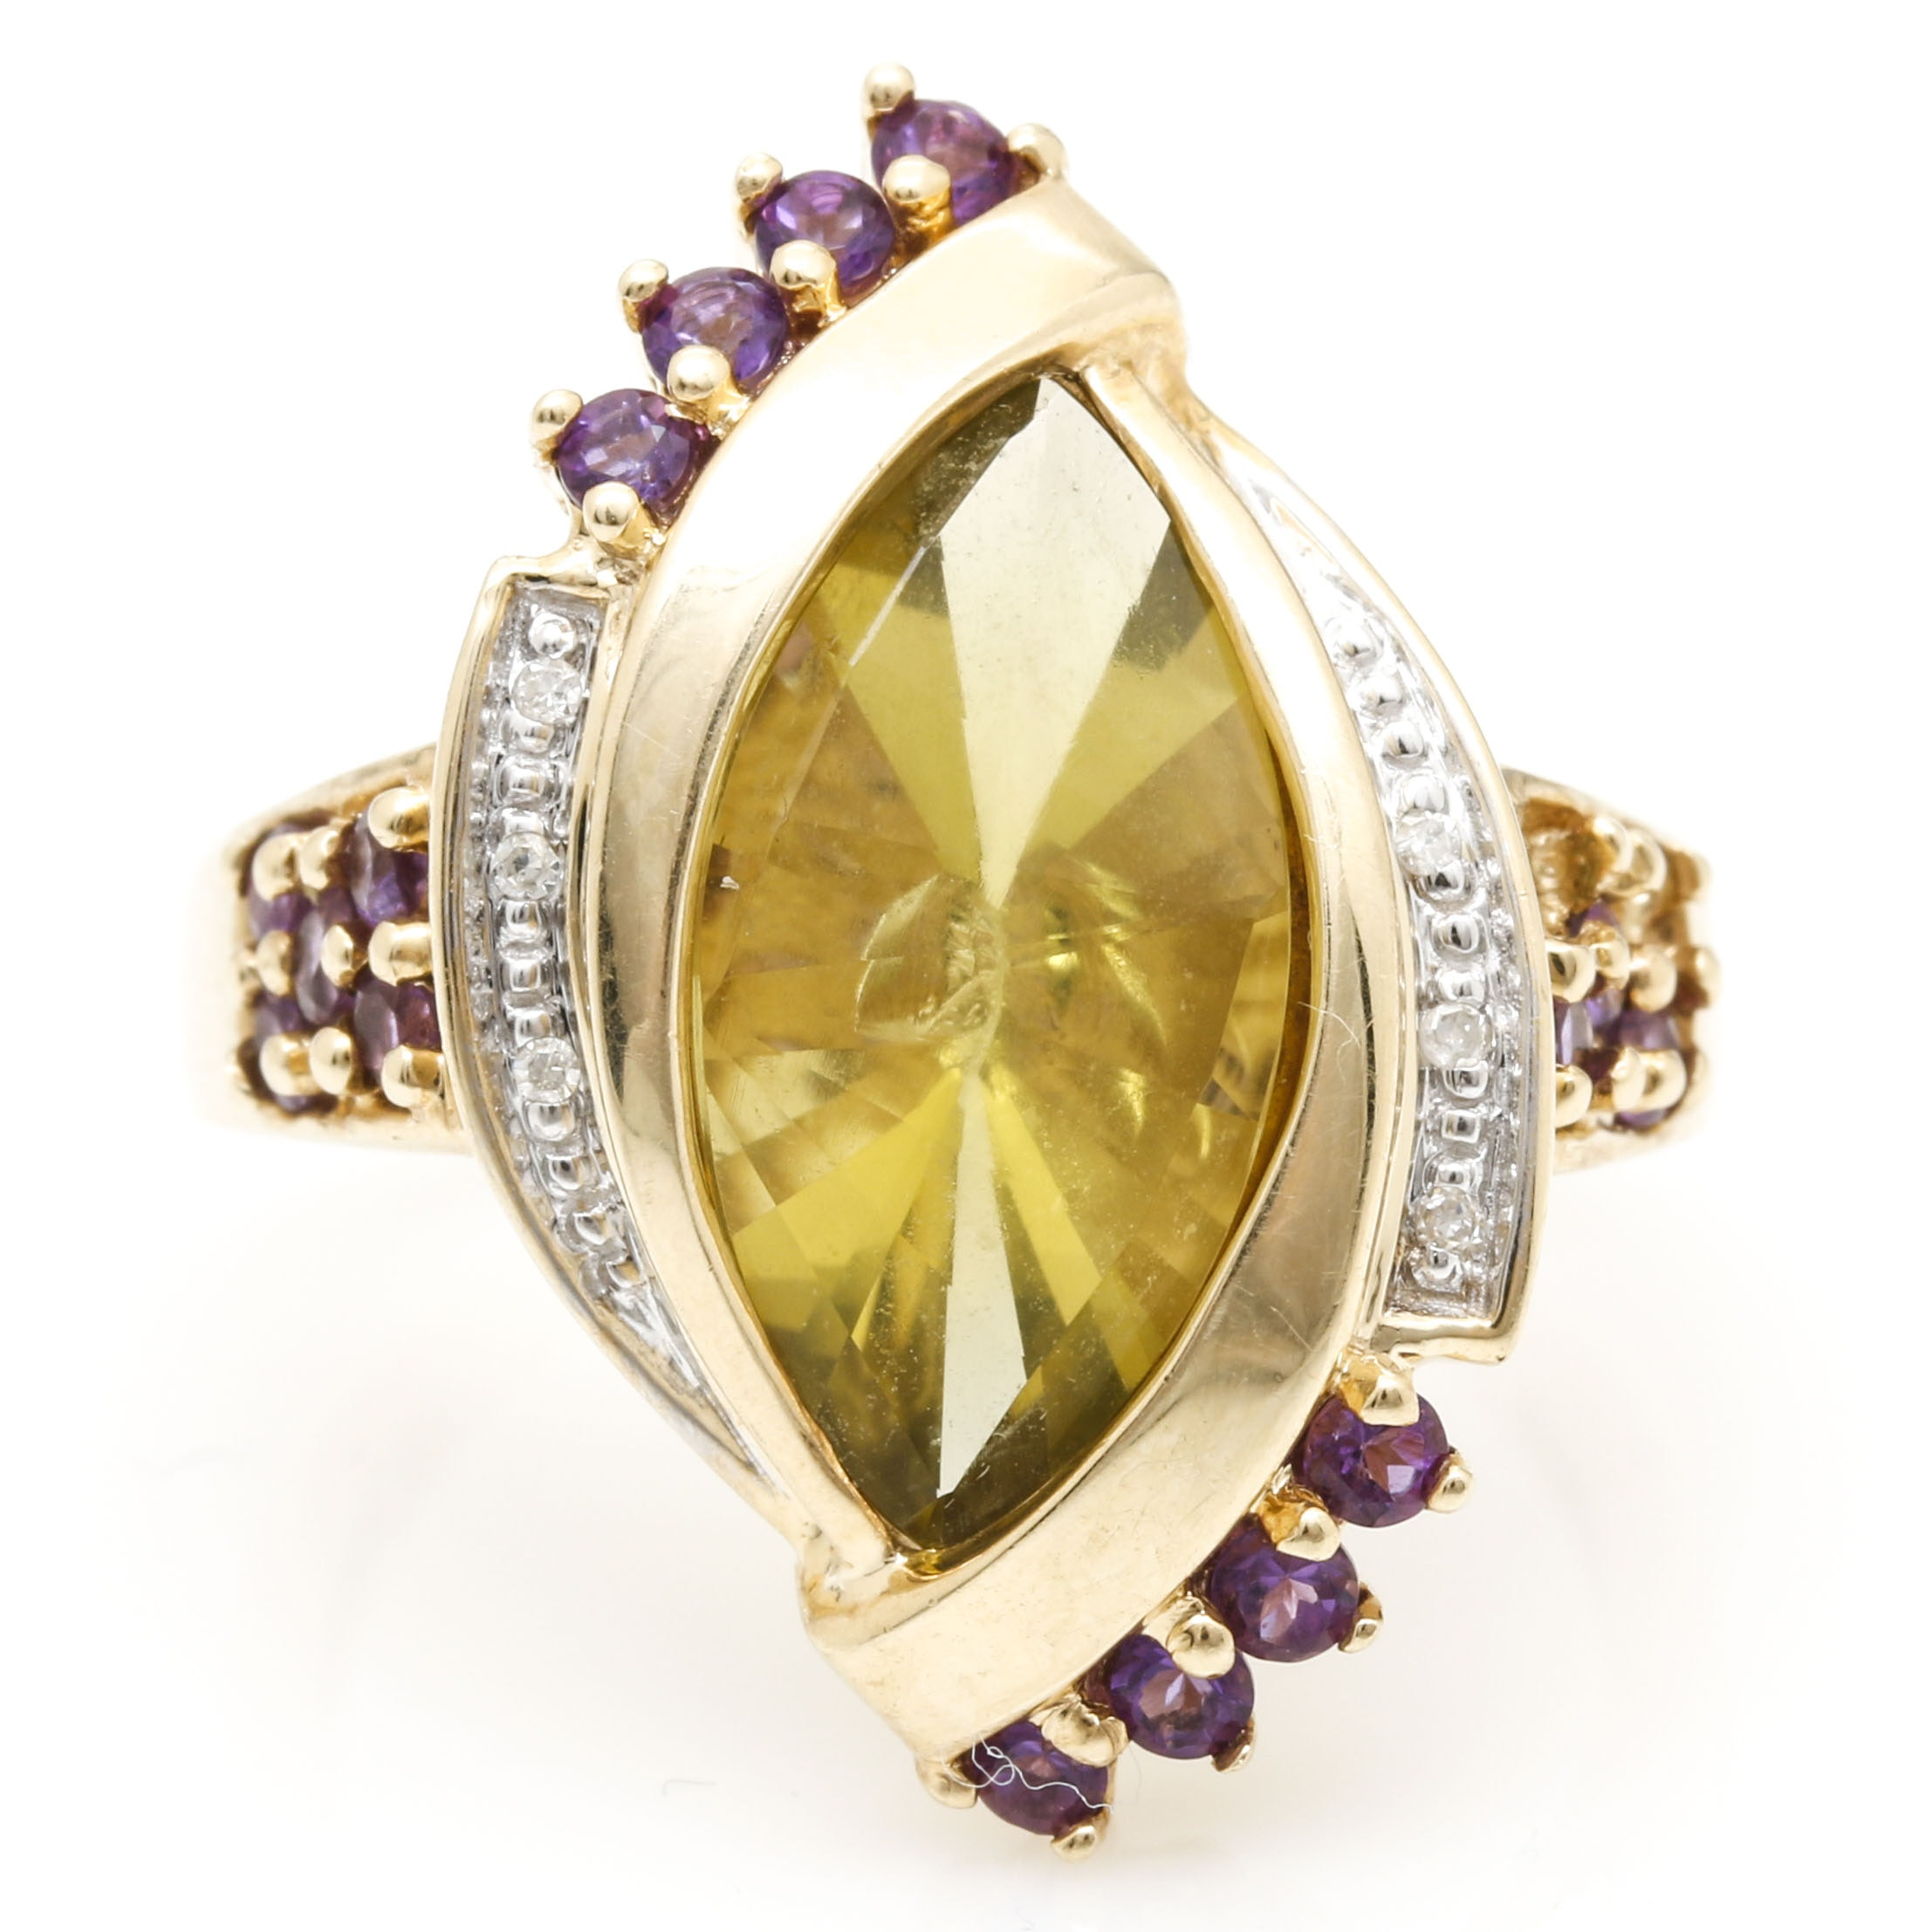 10K Yellow Gold Citrine, Amethyst, and Diamond Ring